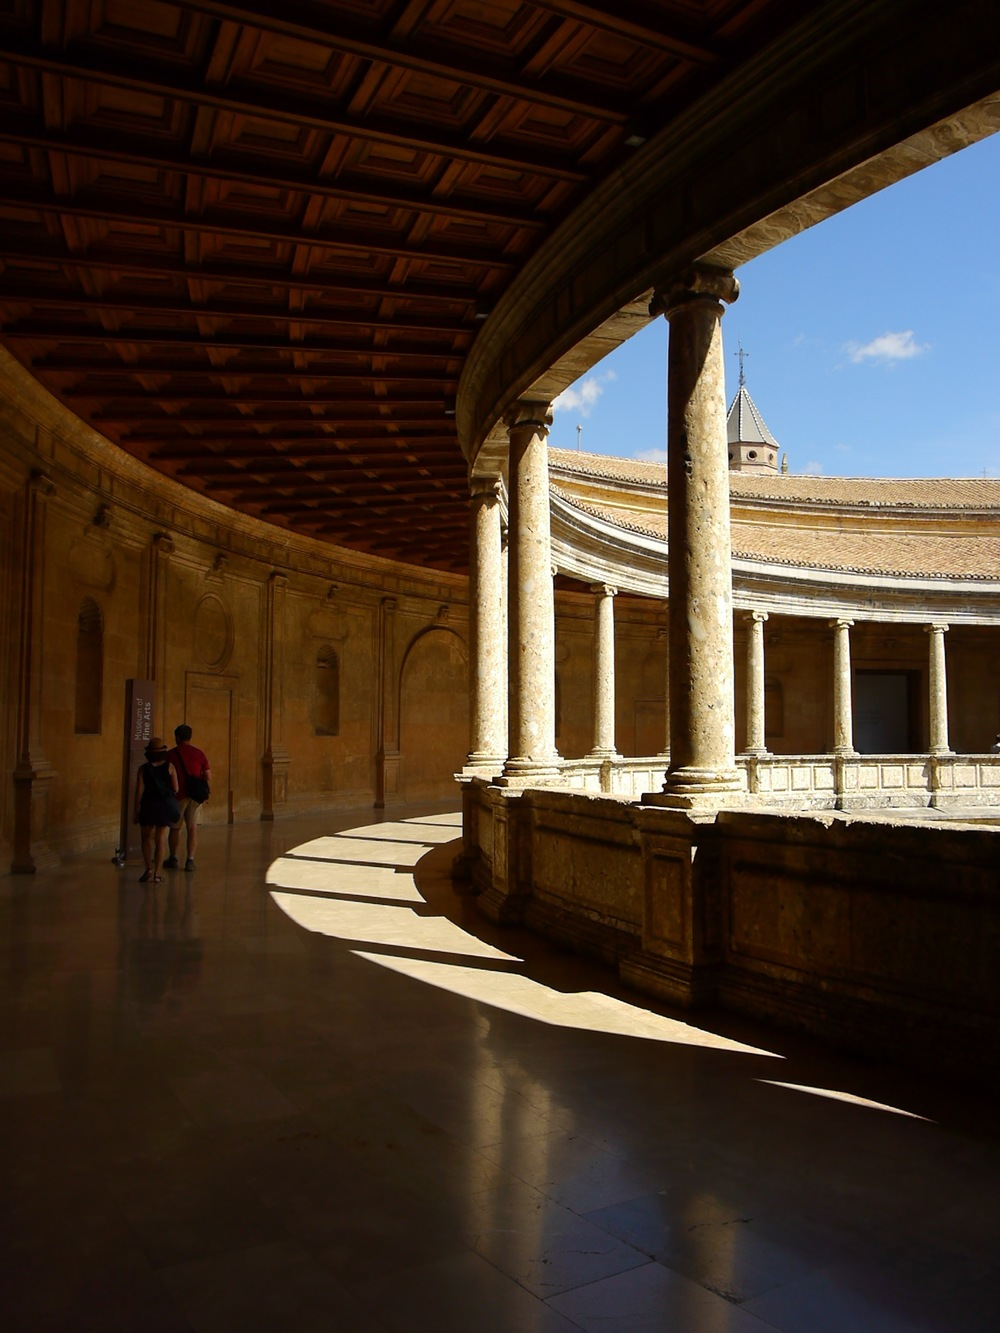 Granada, Spain- What you can see of the Alhambra for free